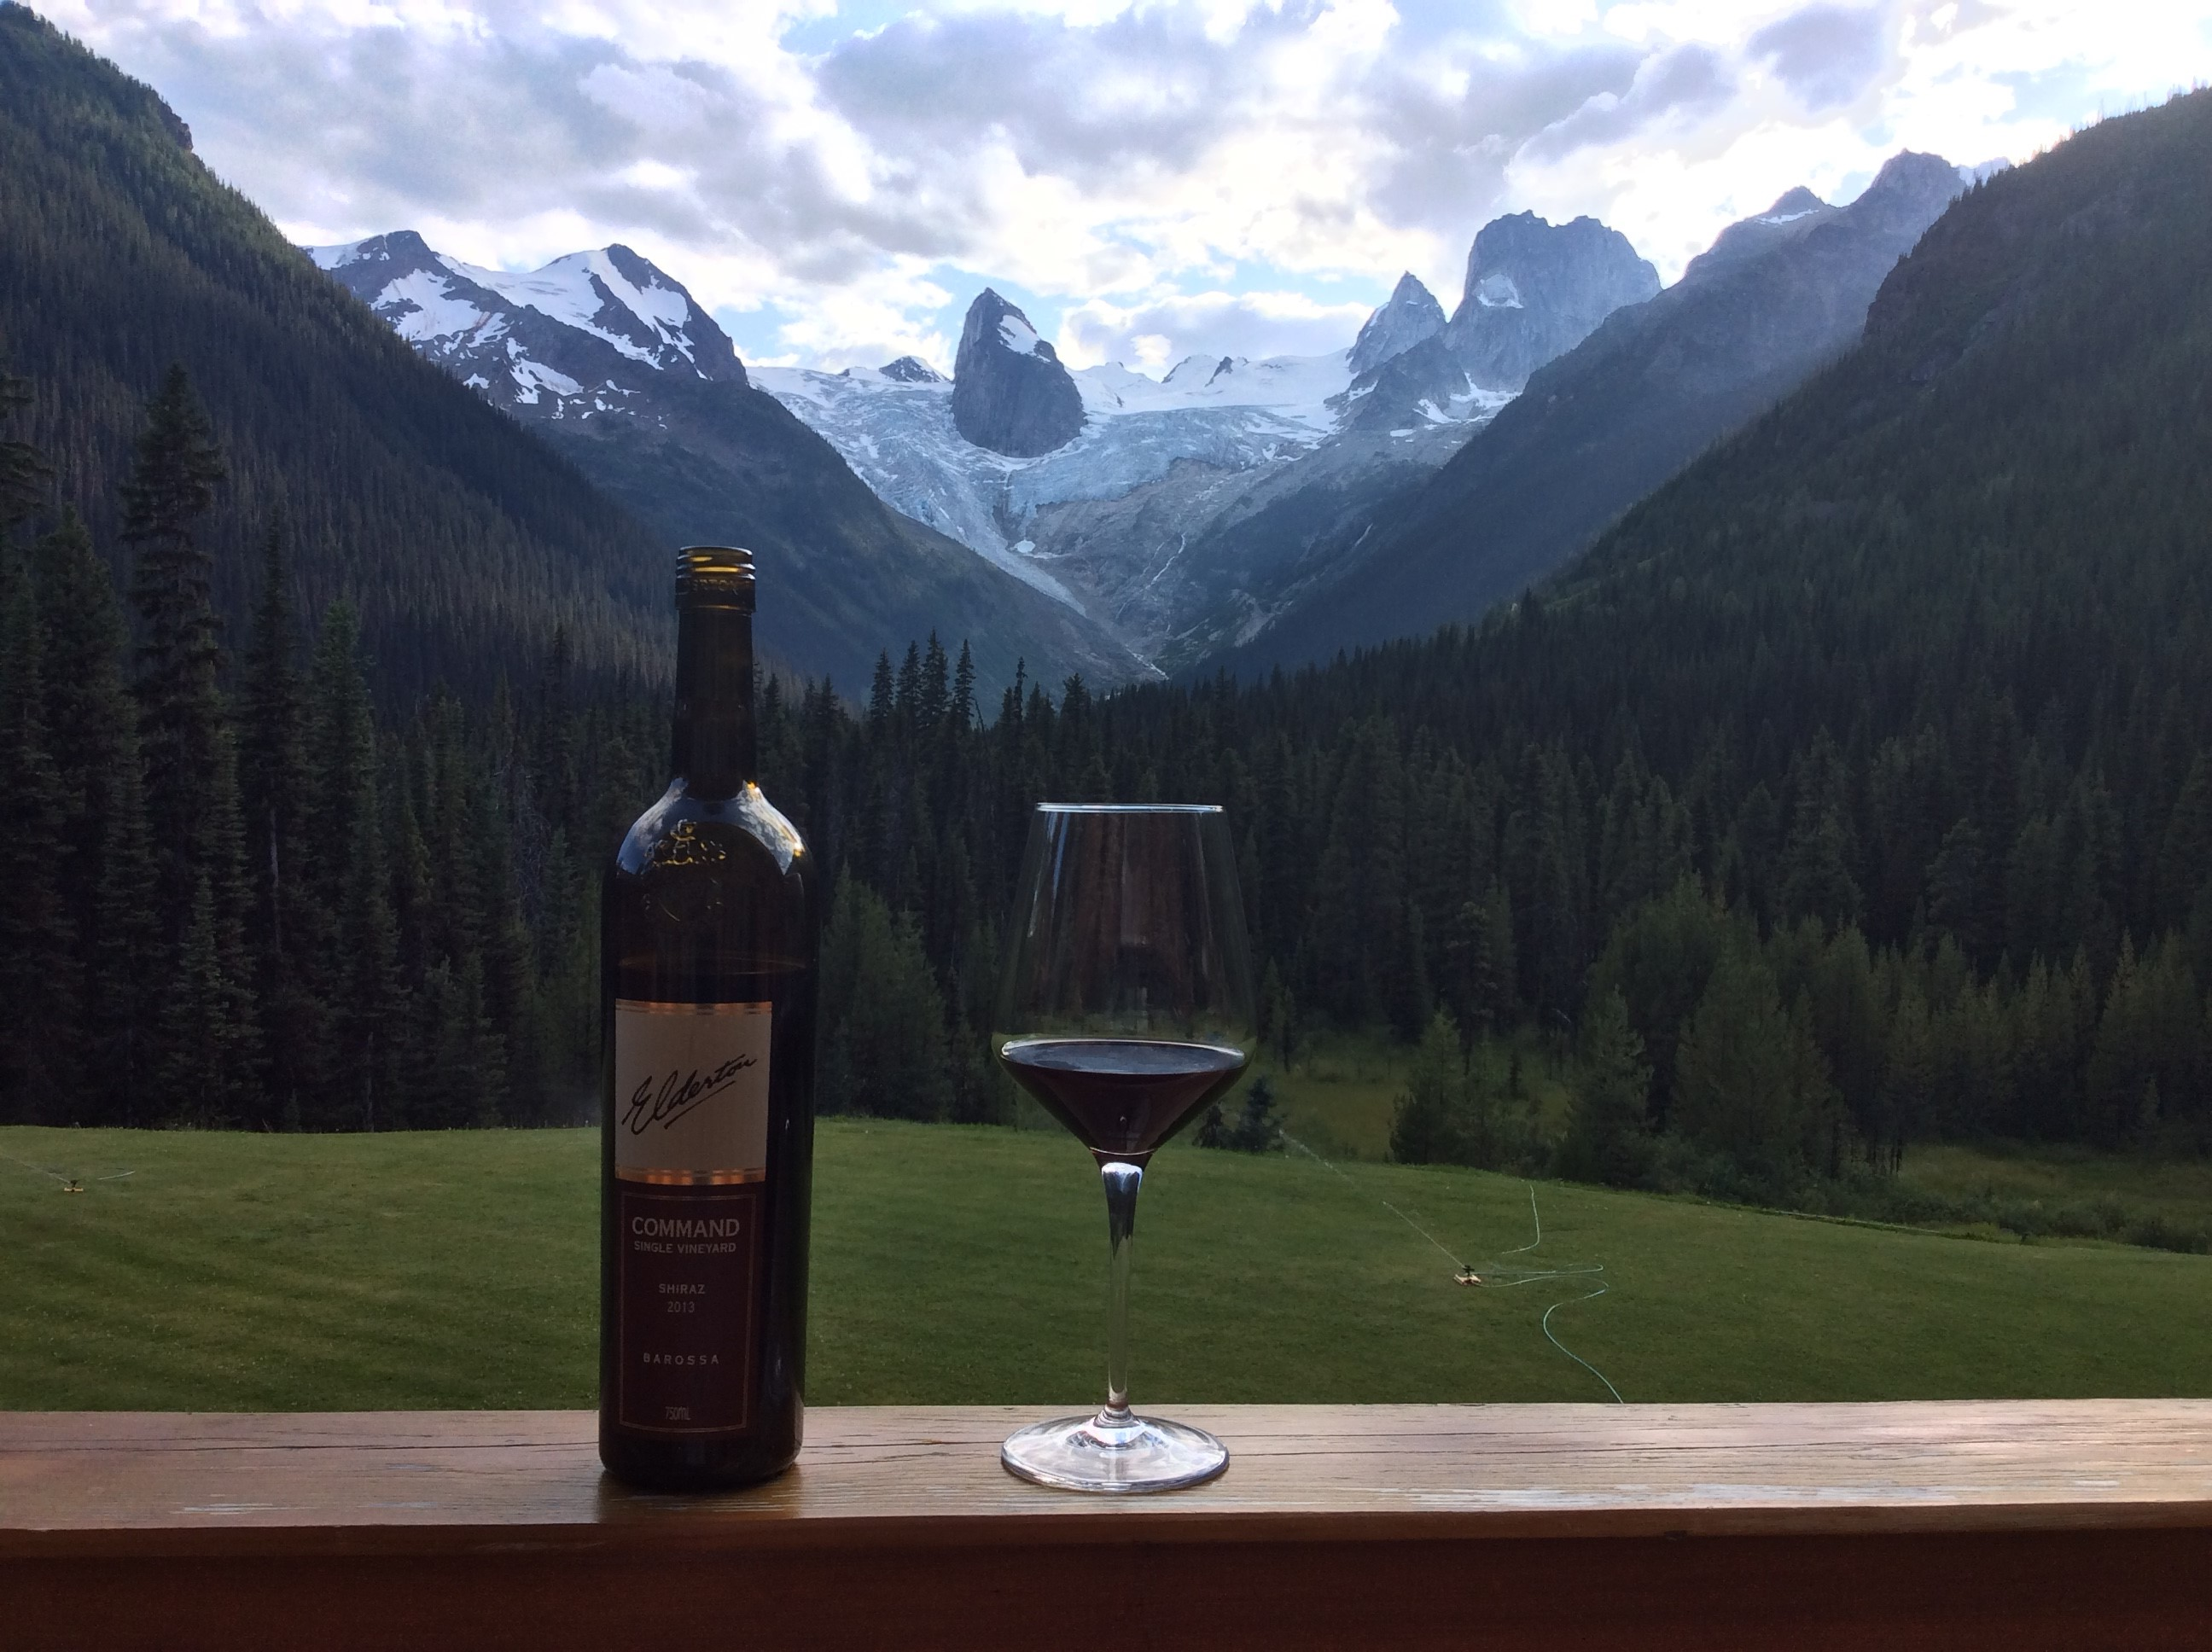 Command Shiraz on tour with Derek in the Bugaboos in Canada